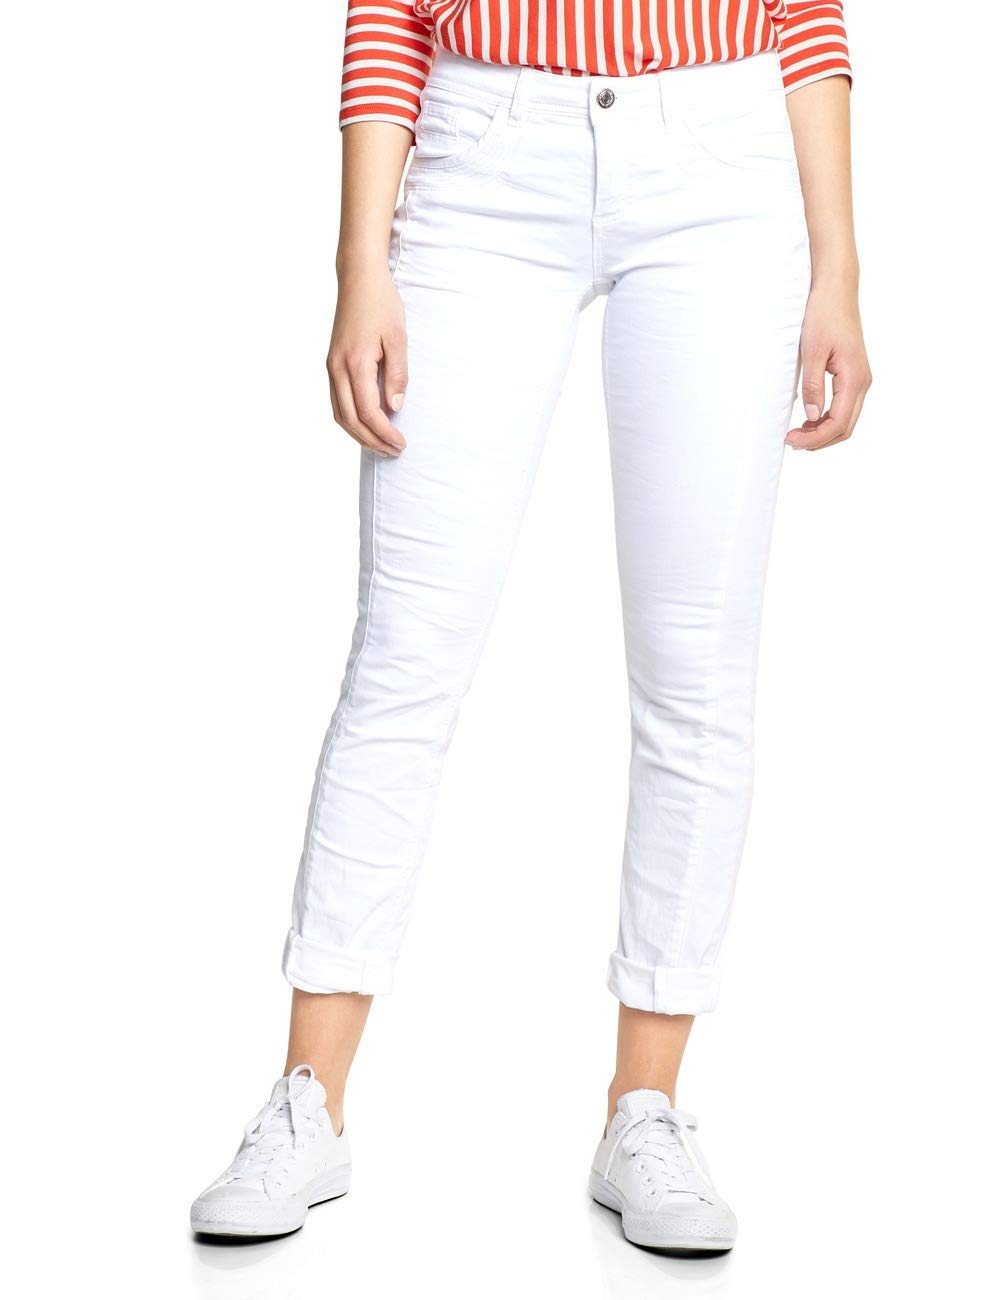 Jean 10000taille 372029 SlimBlancwhite Street One Crissi Fabricant25Femme jLUzMVpGqS